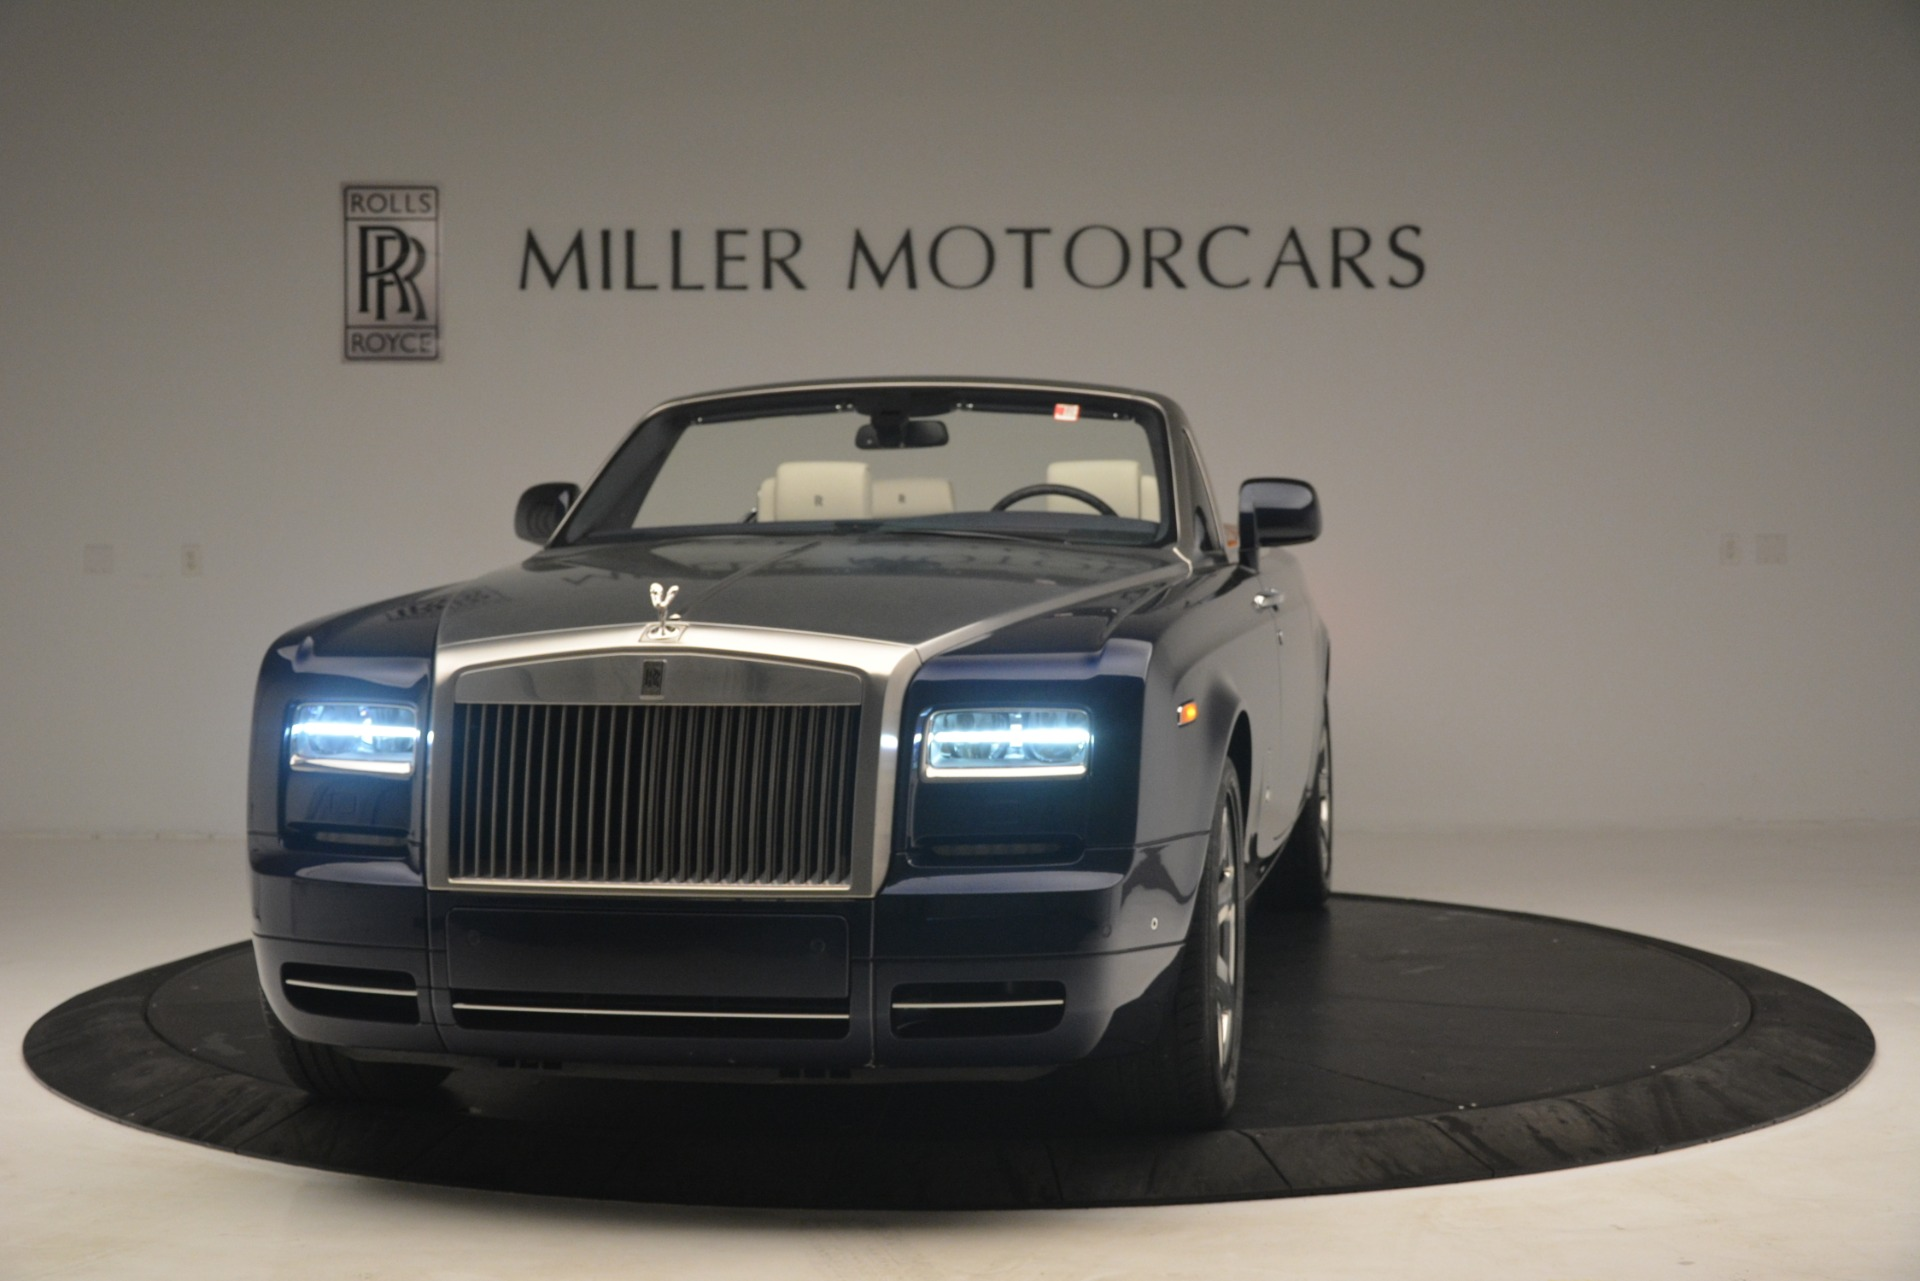 Used 2013 Rolls-Royce Phantom Drophead Coupe for sale Sold at Bugatti of Greenwich in Greenwich CT 06830 1